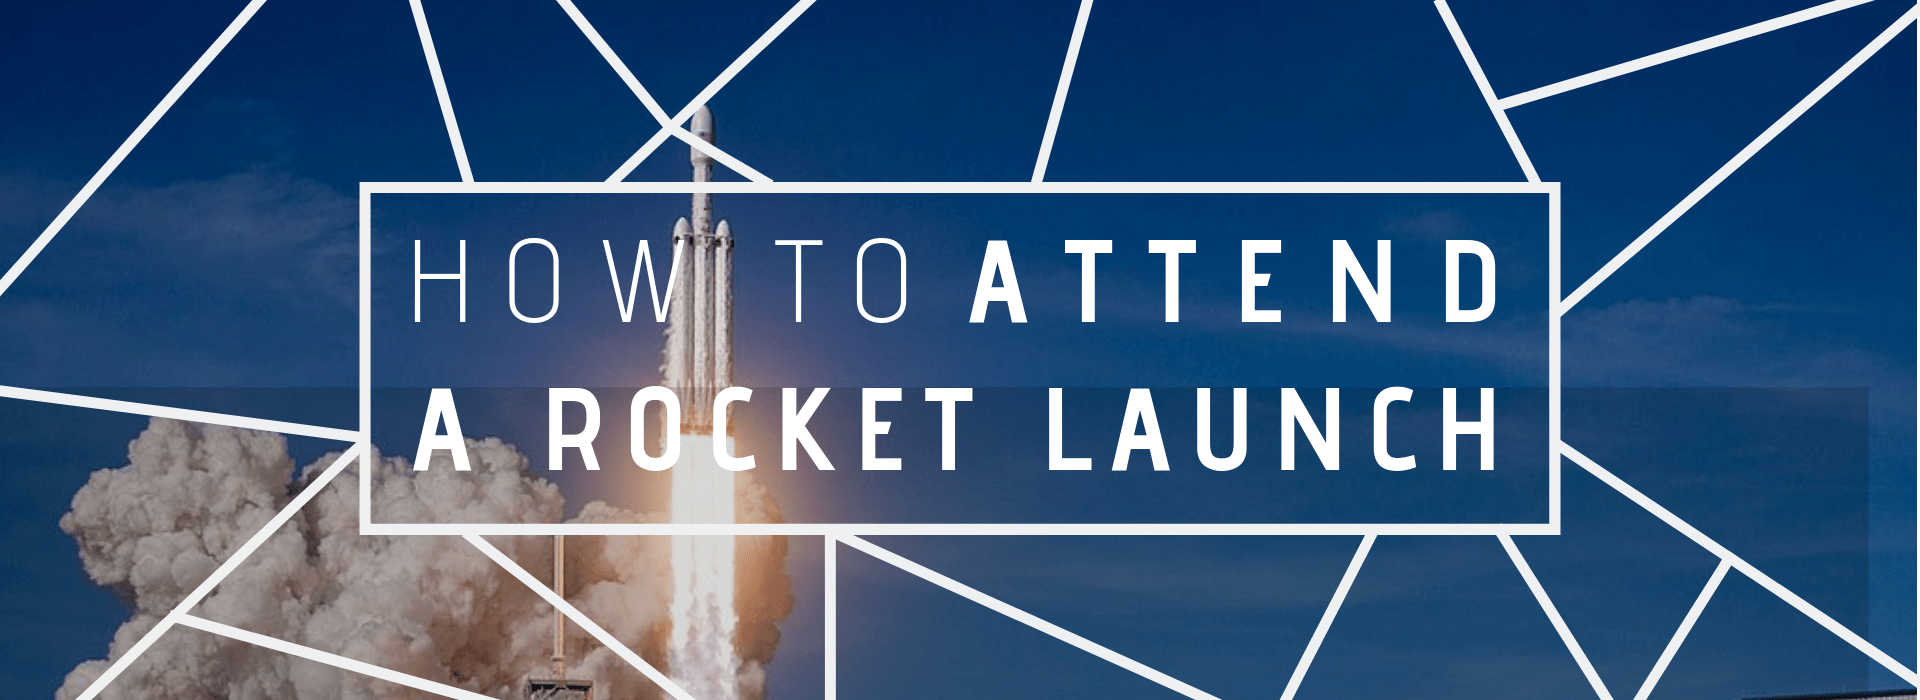 attend a rocket launch